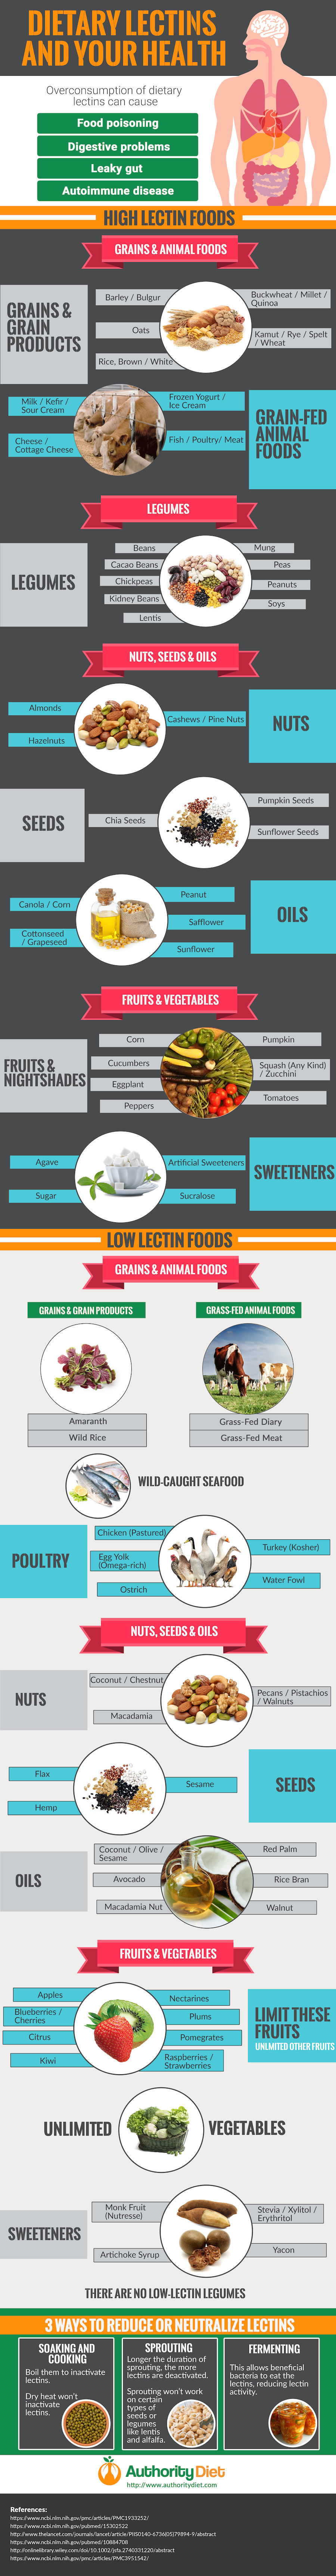 What Is Dietary Lectins? Everything You Should Know - Infographic